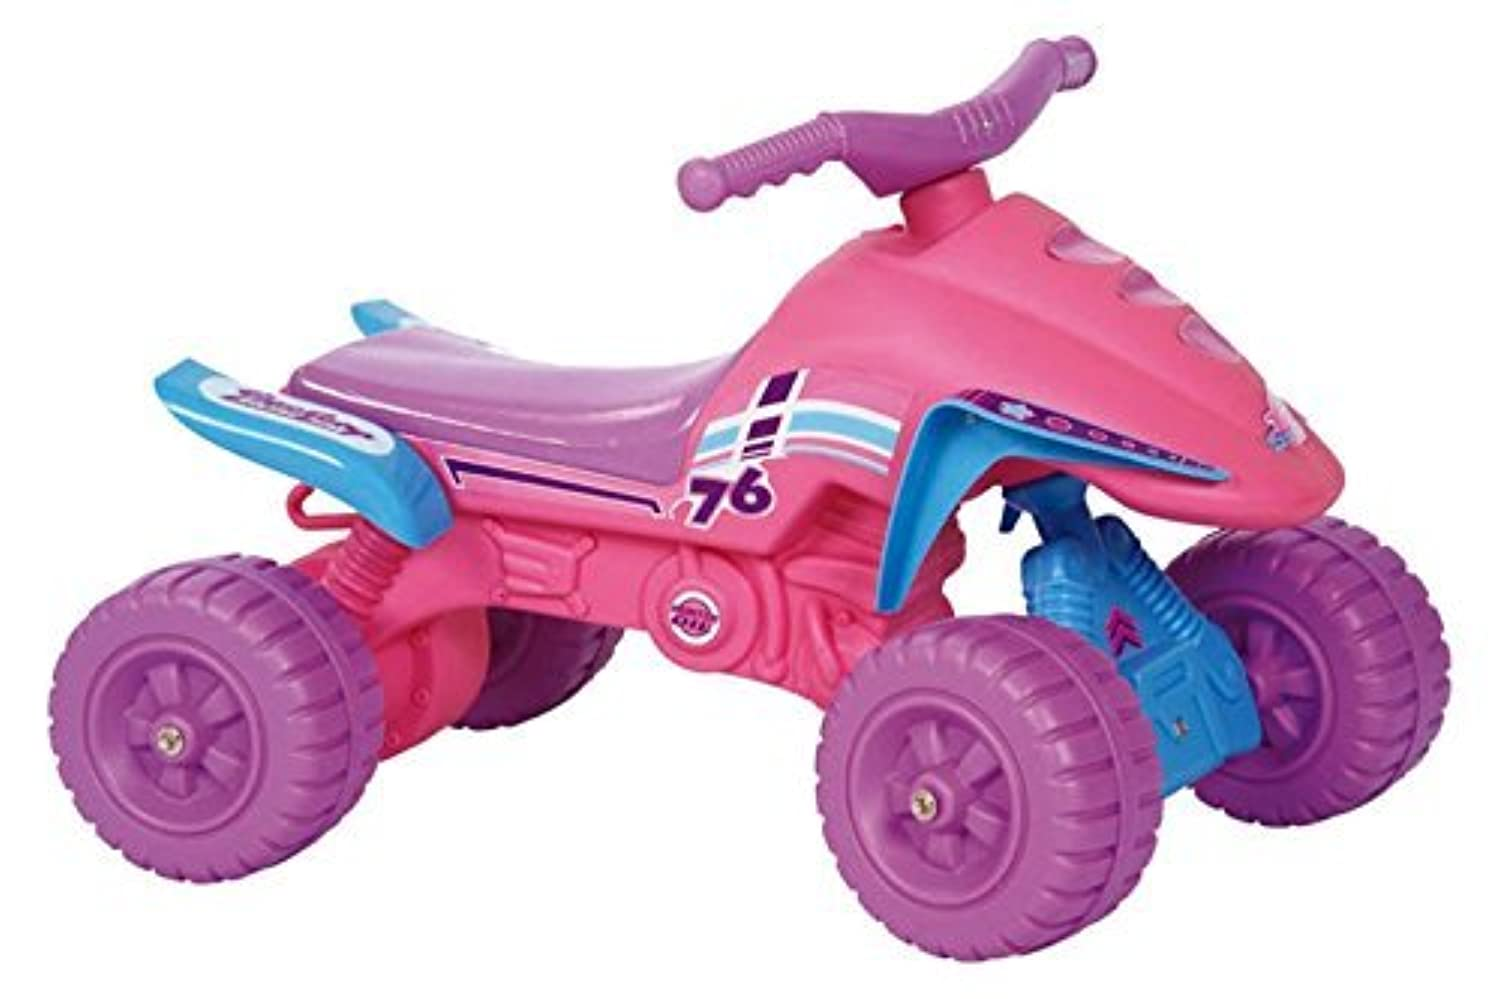 POCO DIVO Pink Ride-on ATV Low-seat Toddler Indoor/Outdoor Scooter Princess Riding Toy Girls Motorcycle [並行輸入品]